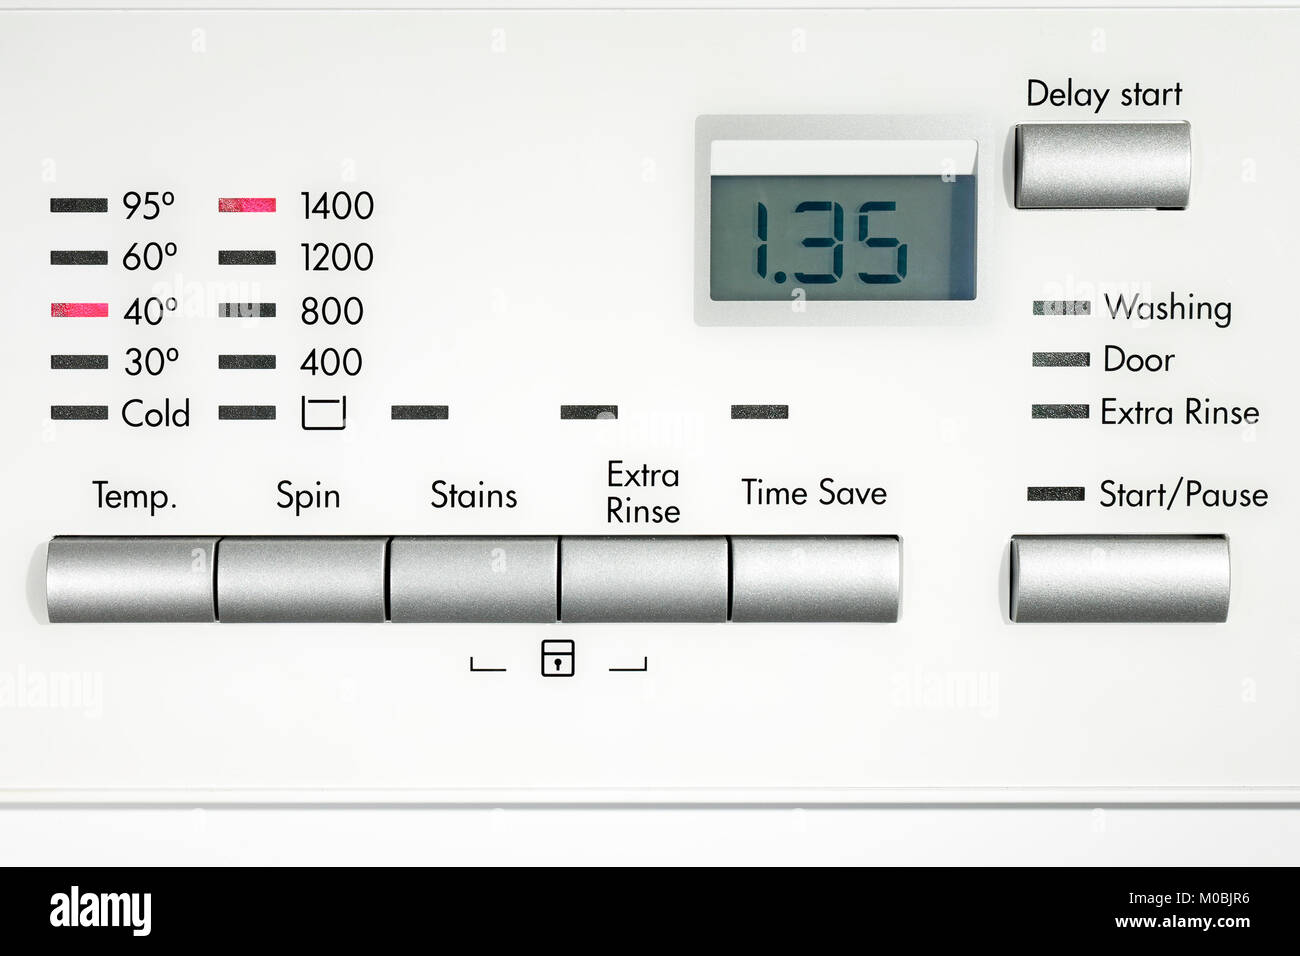 Washing machine set to 40 degree wash and 1400RPM spin speed 1hr 35min 1.35hrs - Stock Image